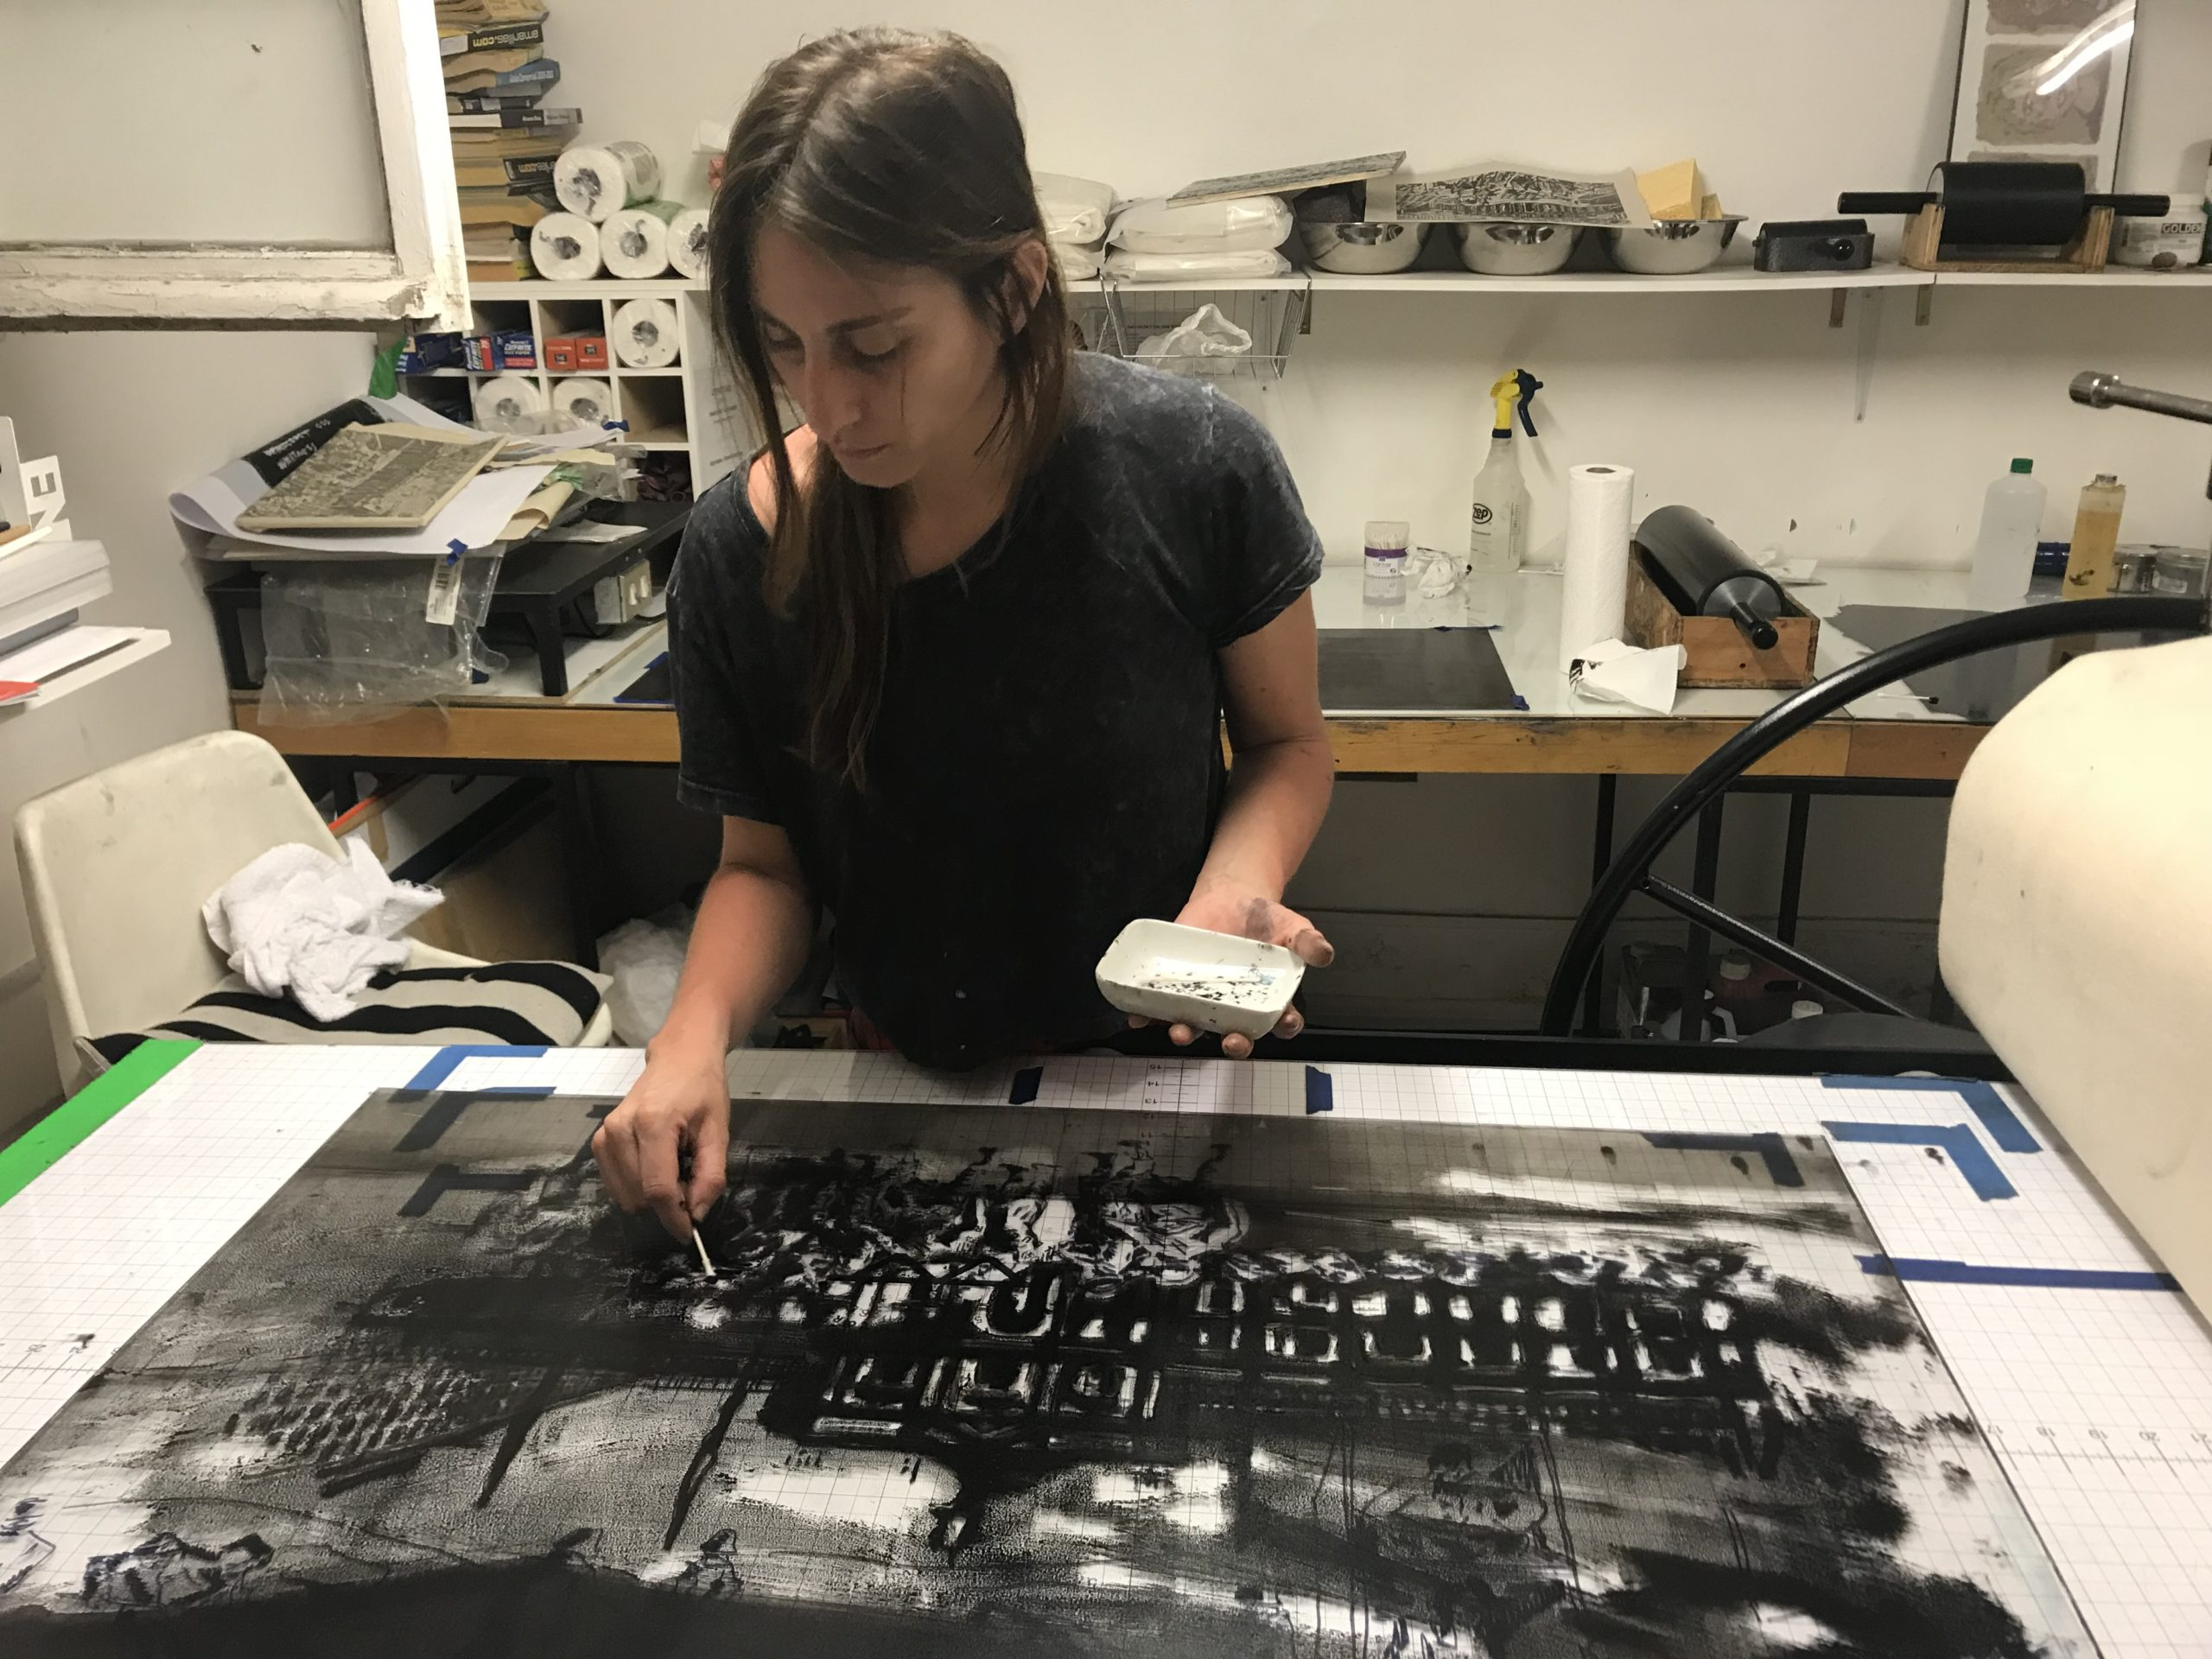 Maria Veronica San Martin is pictured leaning over a press inking/prepping a plate for a print.